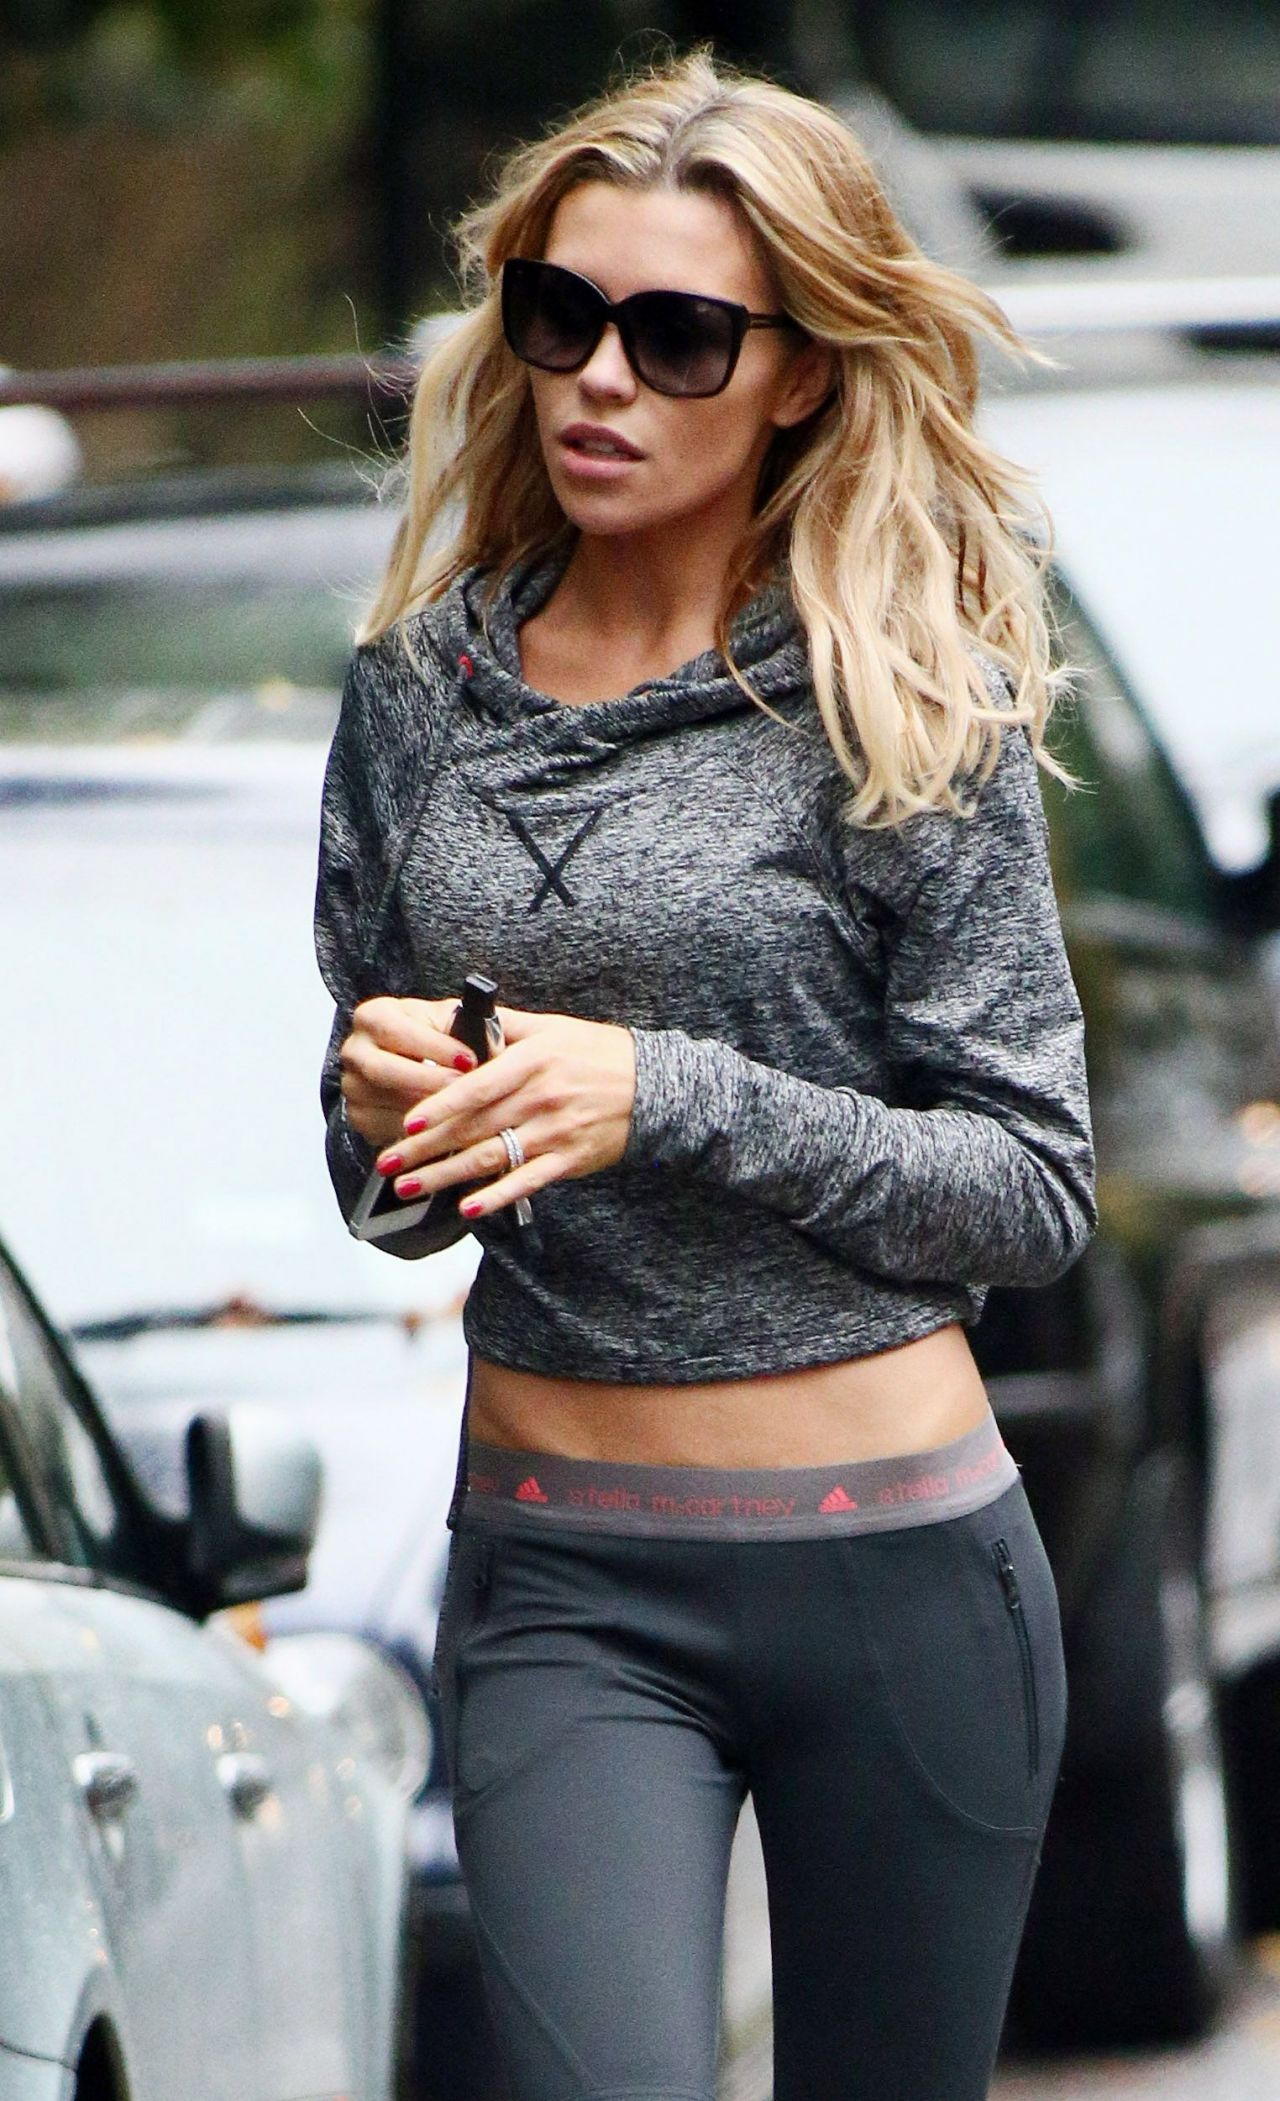 Abbey Clancy Street Style North London Kimberly Williams Paisley Arrives Good